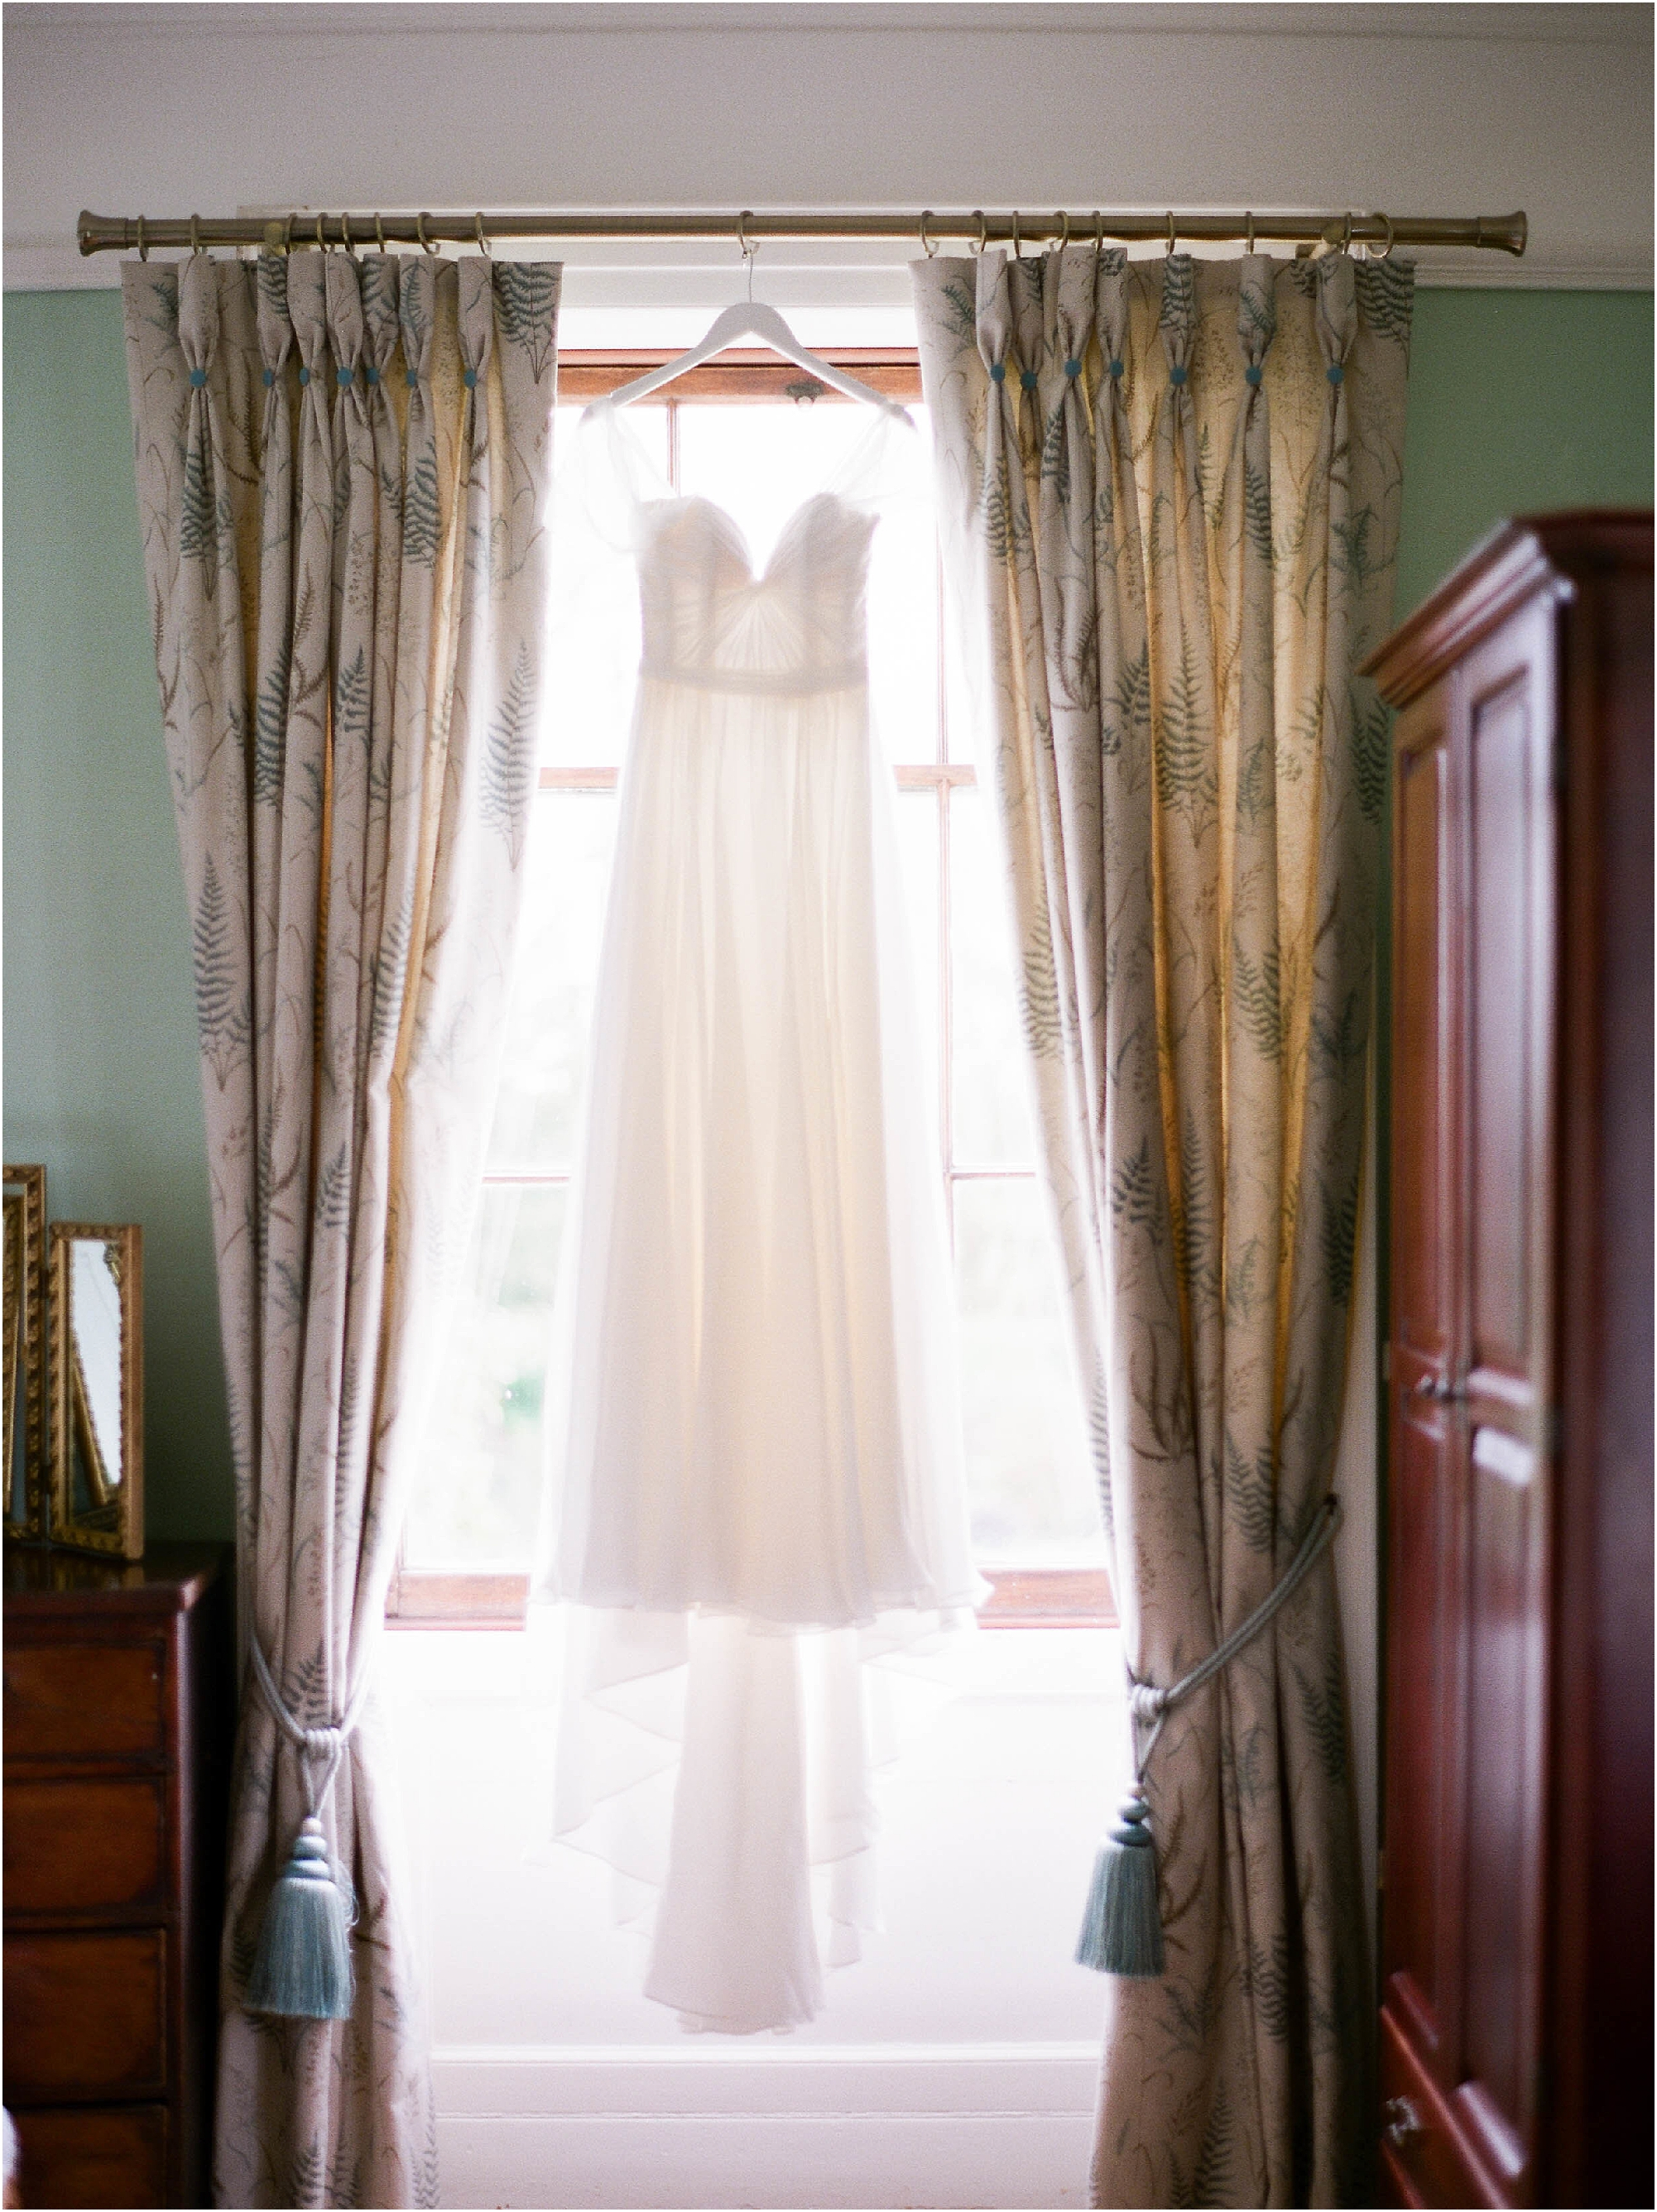 Naomi Neoh wedding dress hanging in window